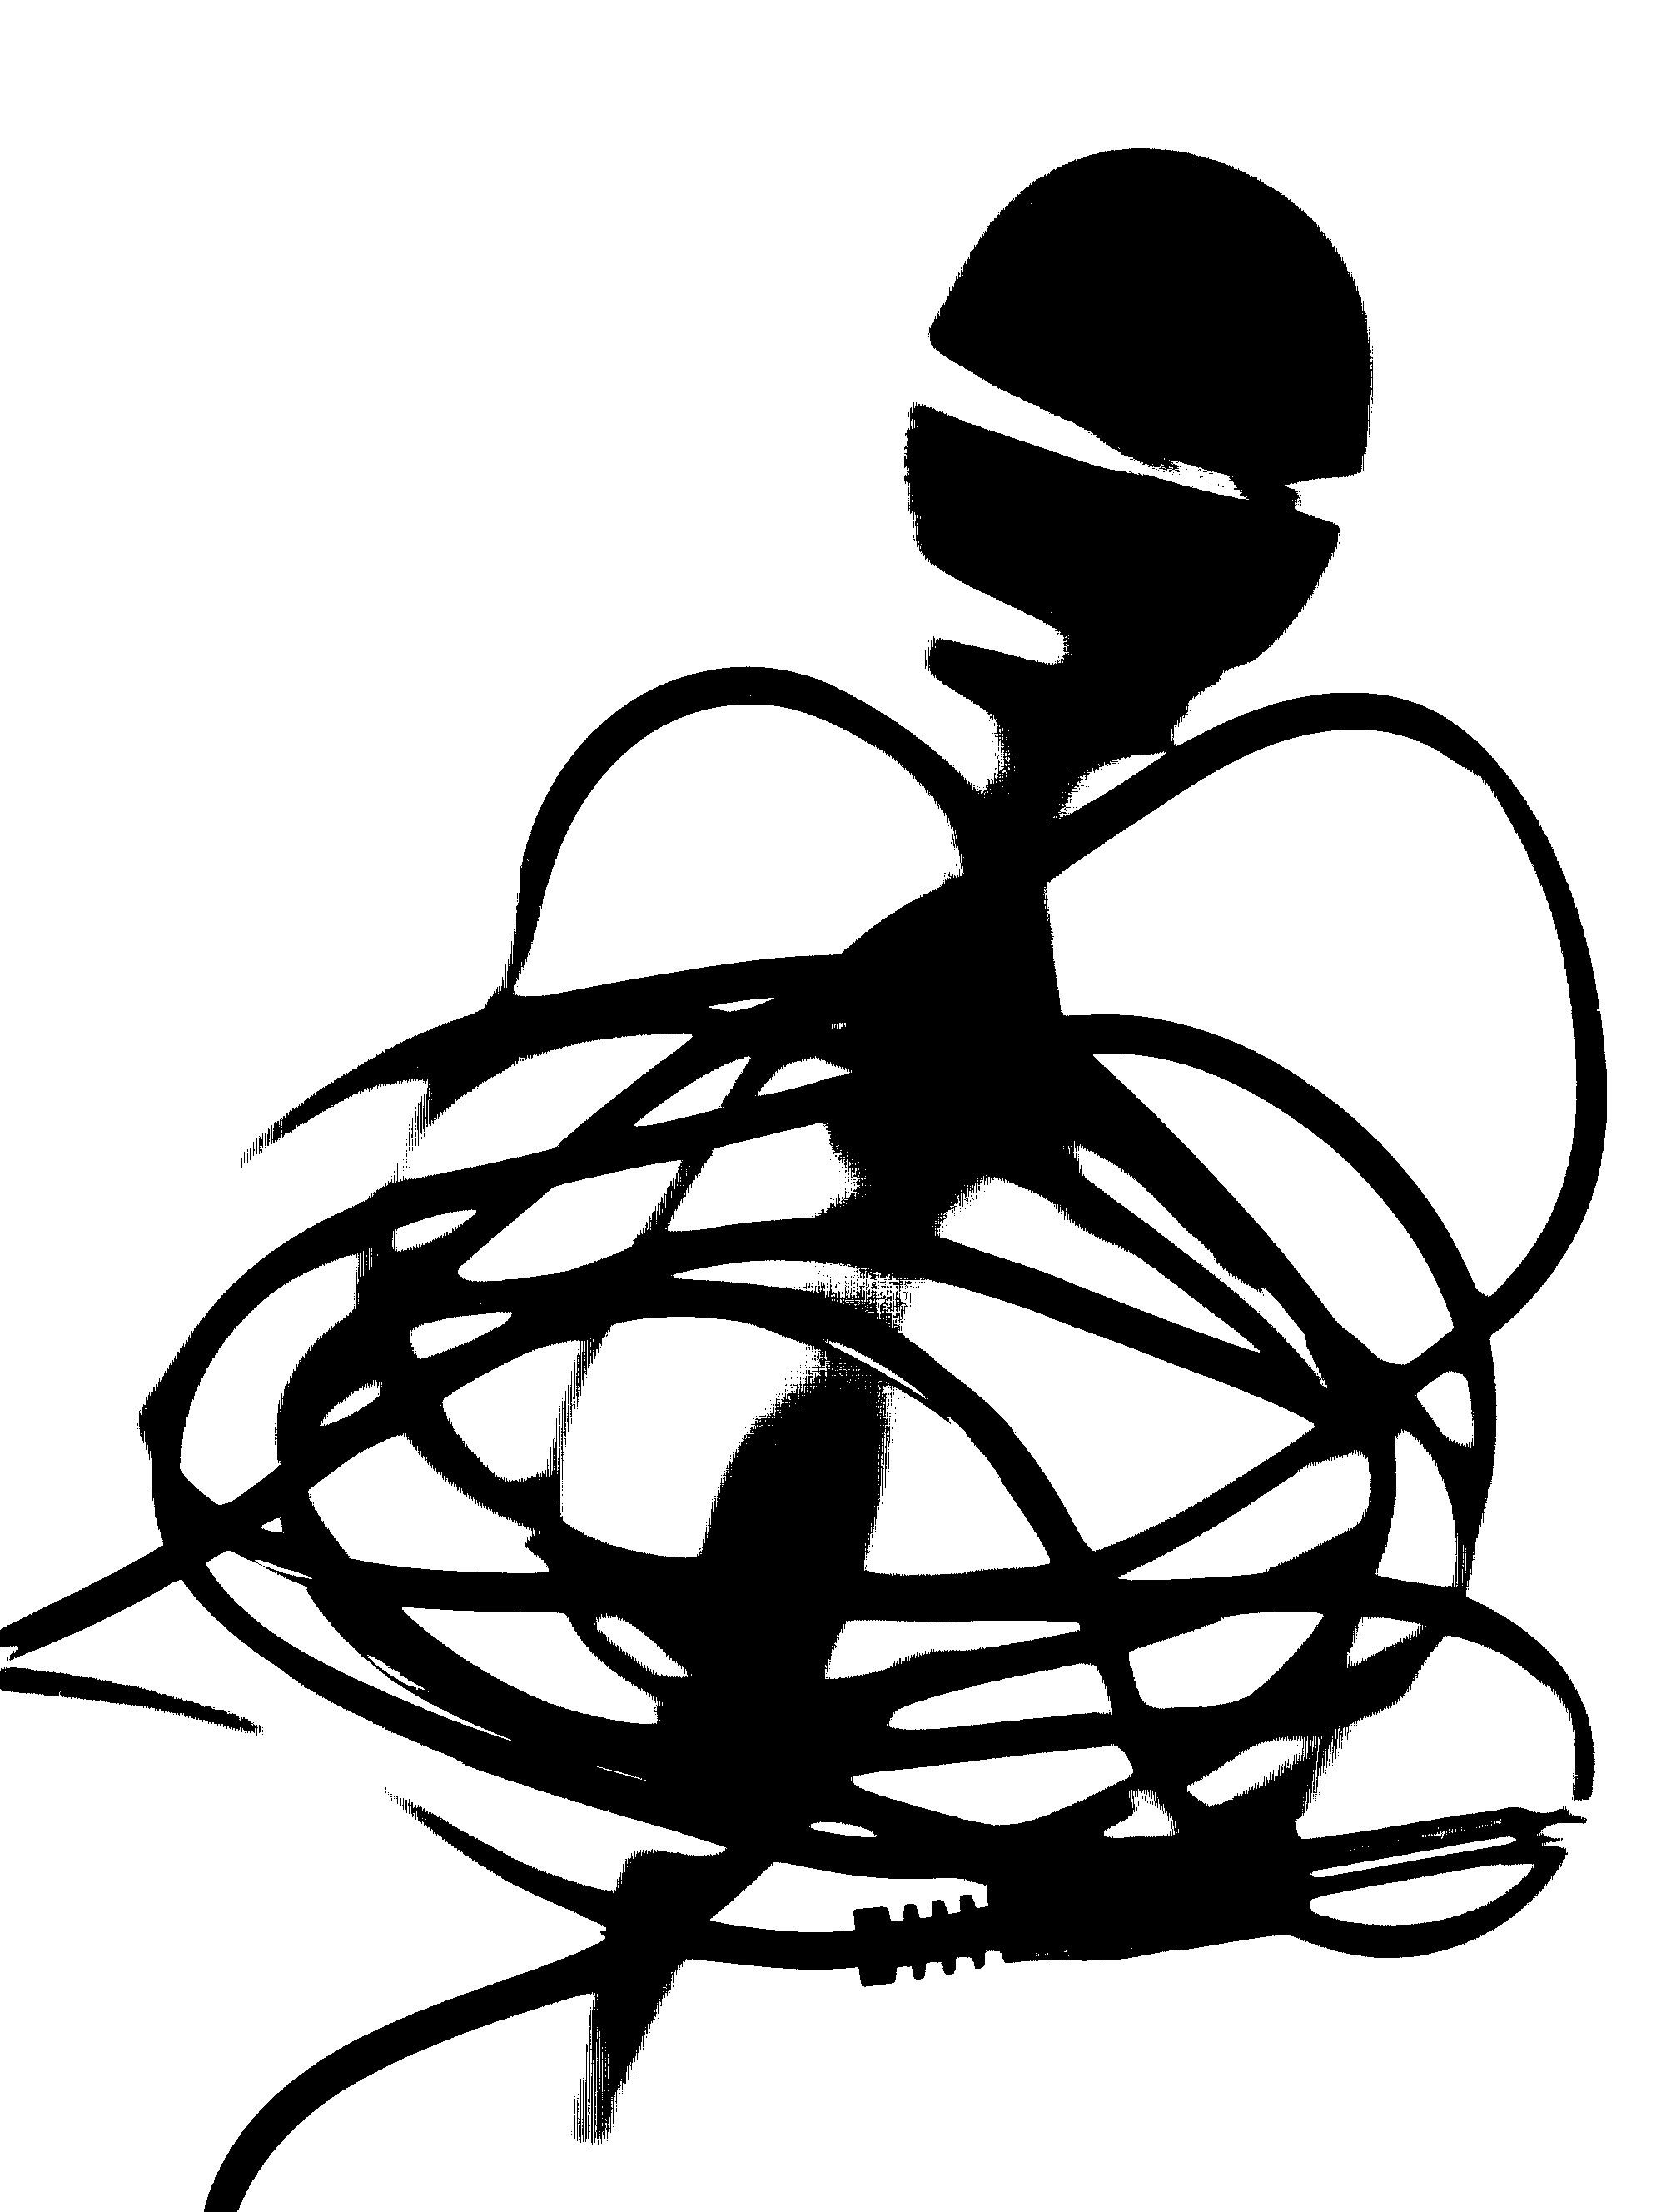 Line Art Microphone : Microphone line drawing at getdrawings free for